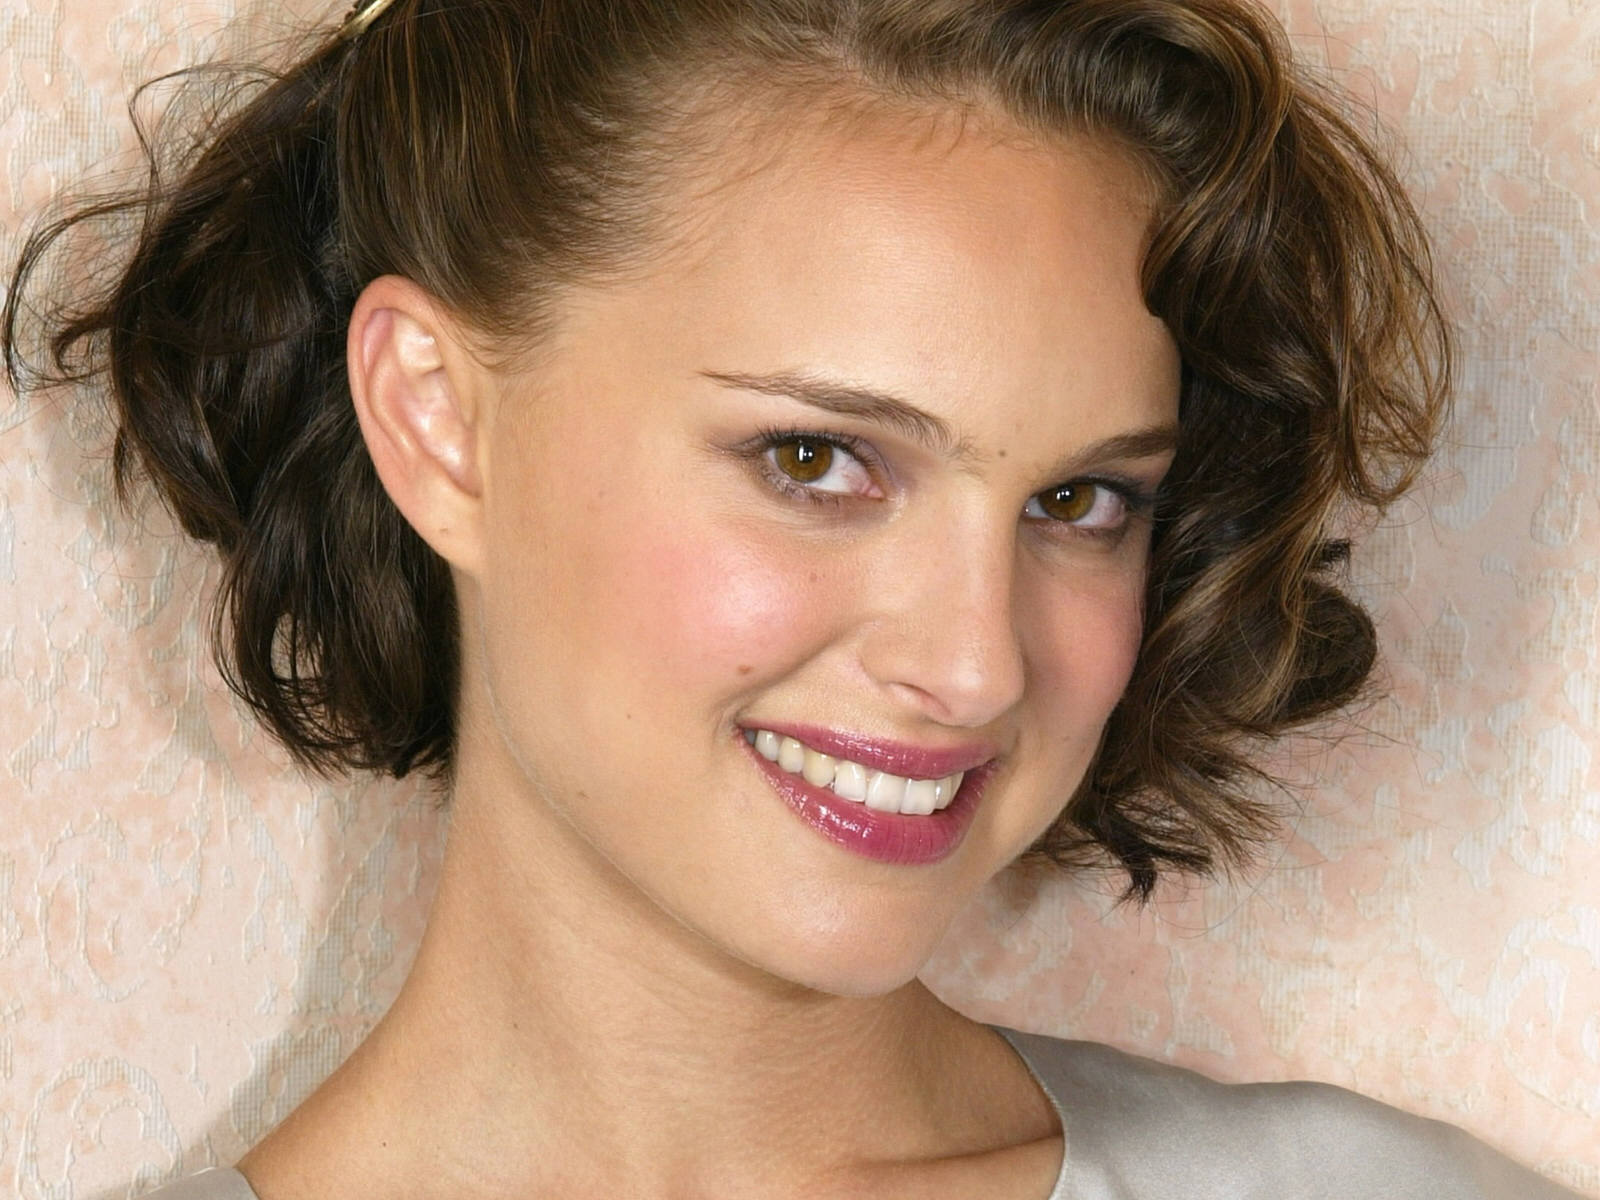 http://3.bp.blogspot.com/-xC3vaOYHh6k/Tt-k6vZ343I/AAAAAAAAC04/zU7kleP4qSo/s1600/Natalie_Portman_lips_Photo_Shoot_Wallpaper.jpg